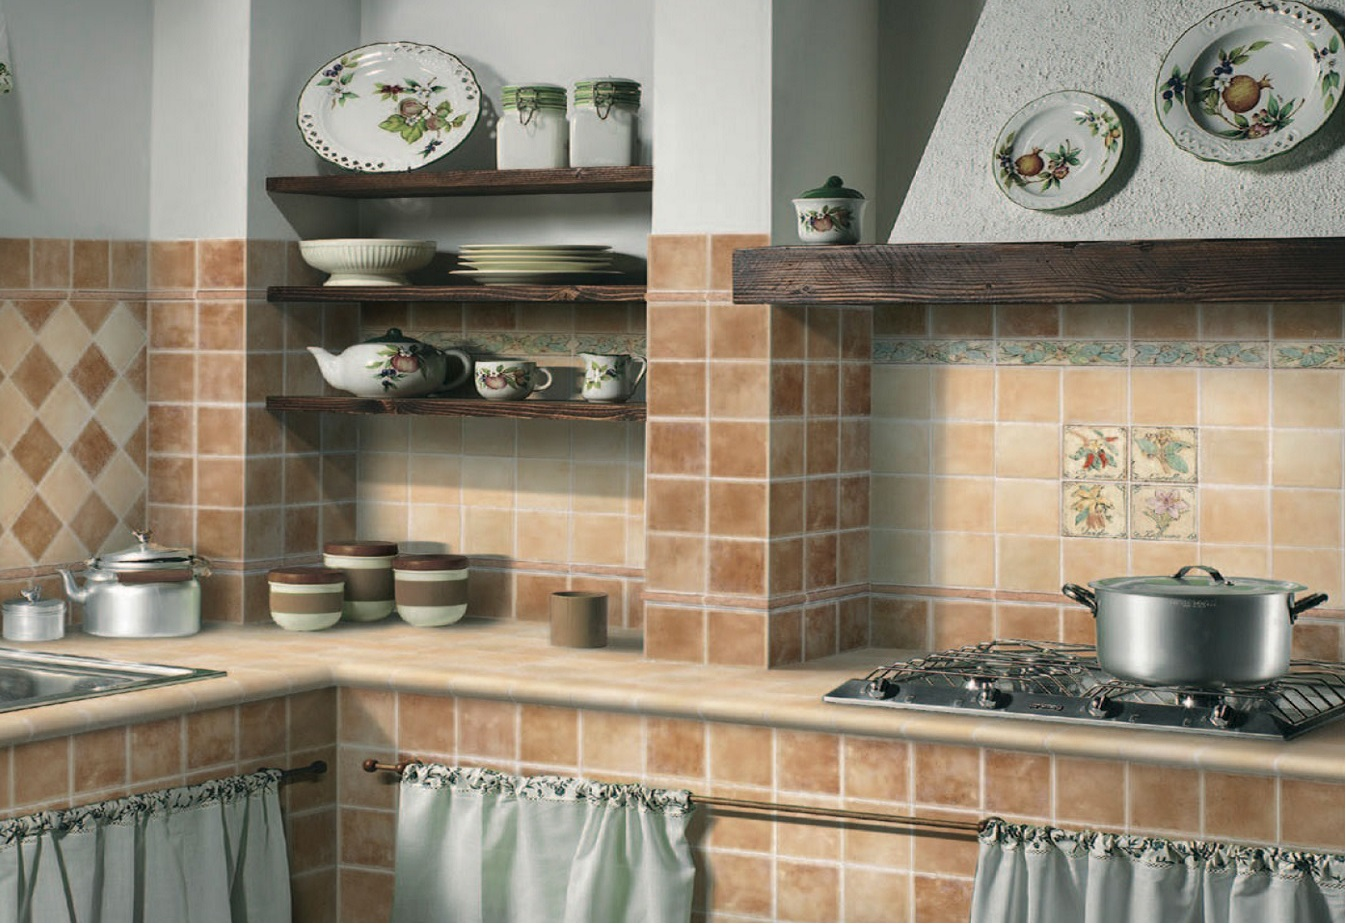 Awesome Rivestimento Cucina 10x10 Images - Home Ideas - tyger.us